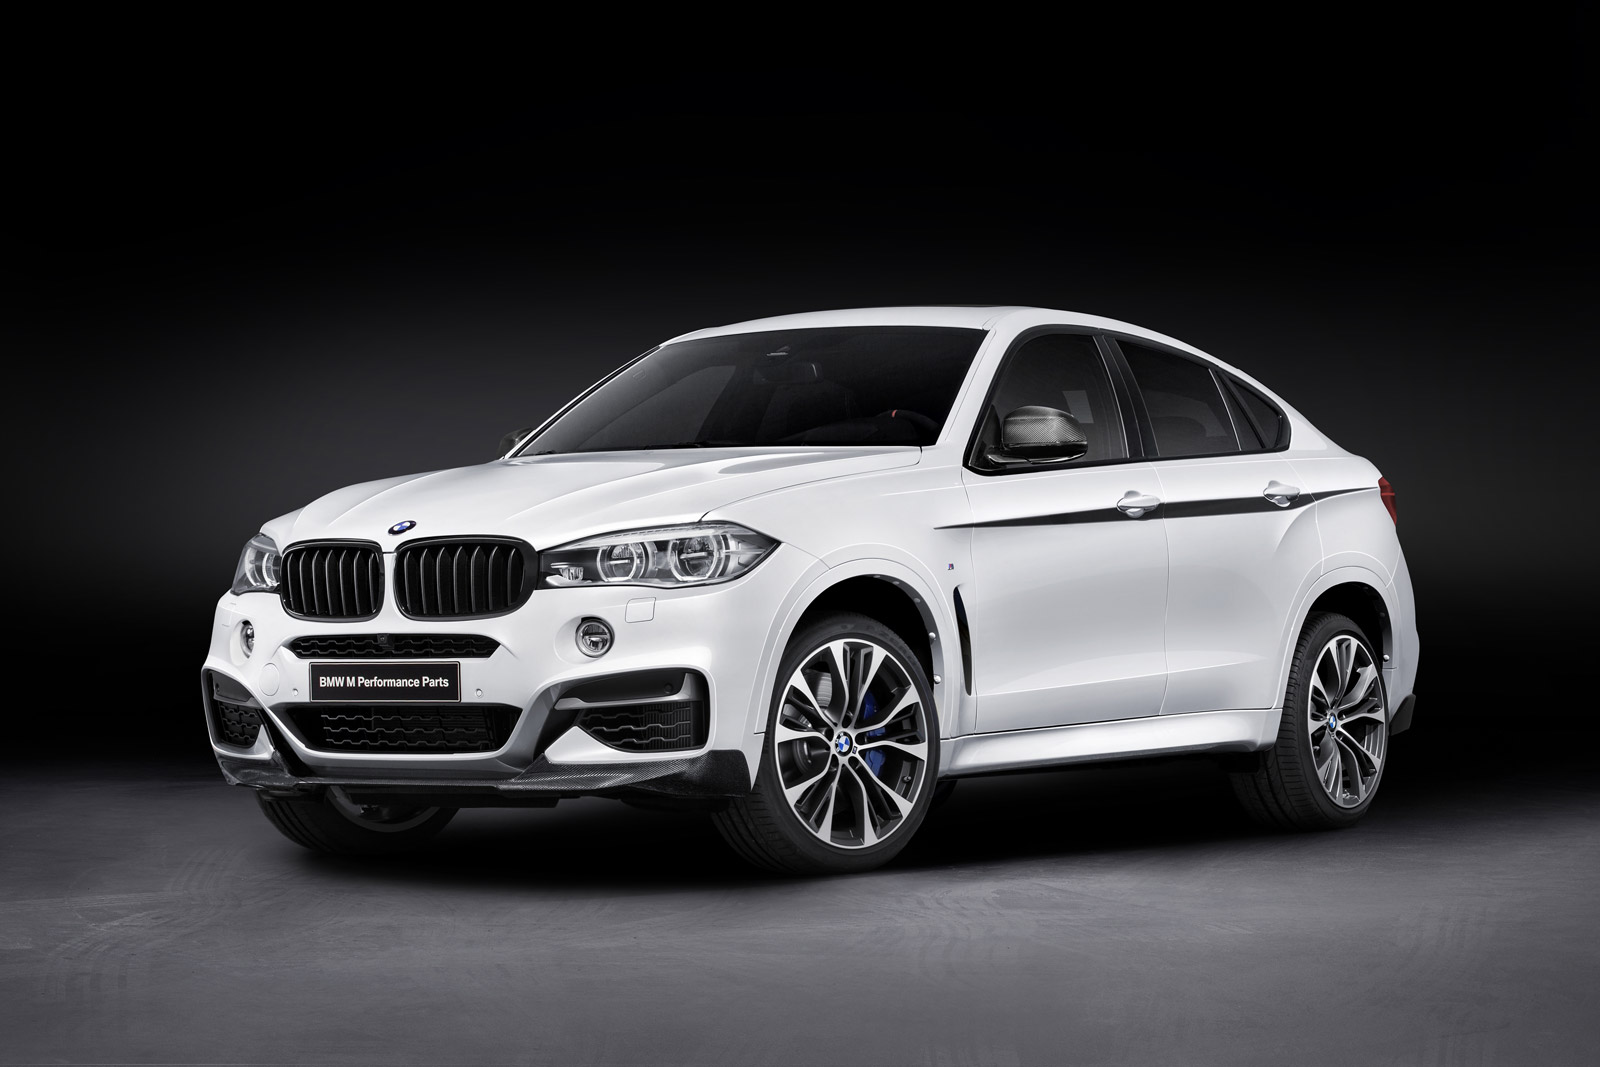 Volvo Of Houston >> 2015 BMW X6 Review, Ratings, Specs, Prices, and Photos - The Car Connection